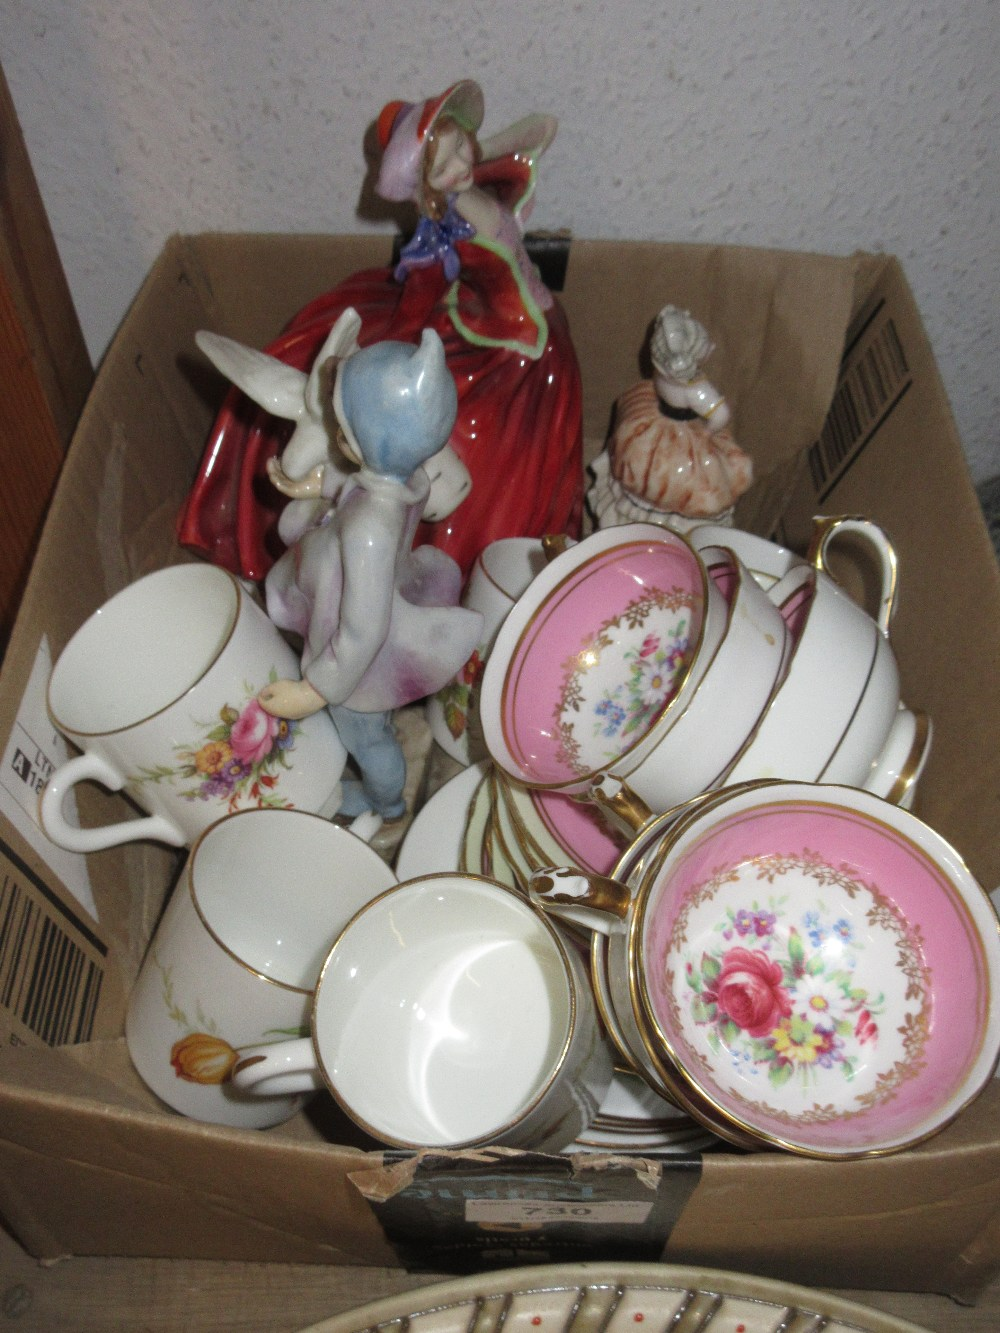 Lot 730 - Royal Worcester figure ' Fantails ' together with a Royal Doulton figure ' Autumn Breezes ', small